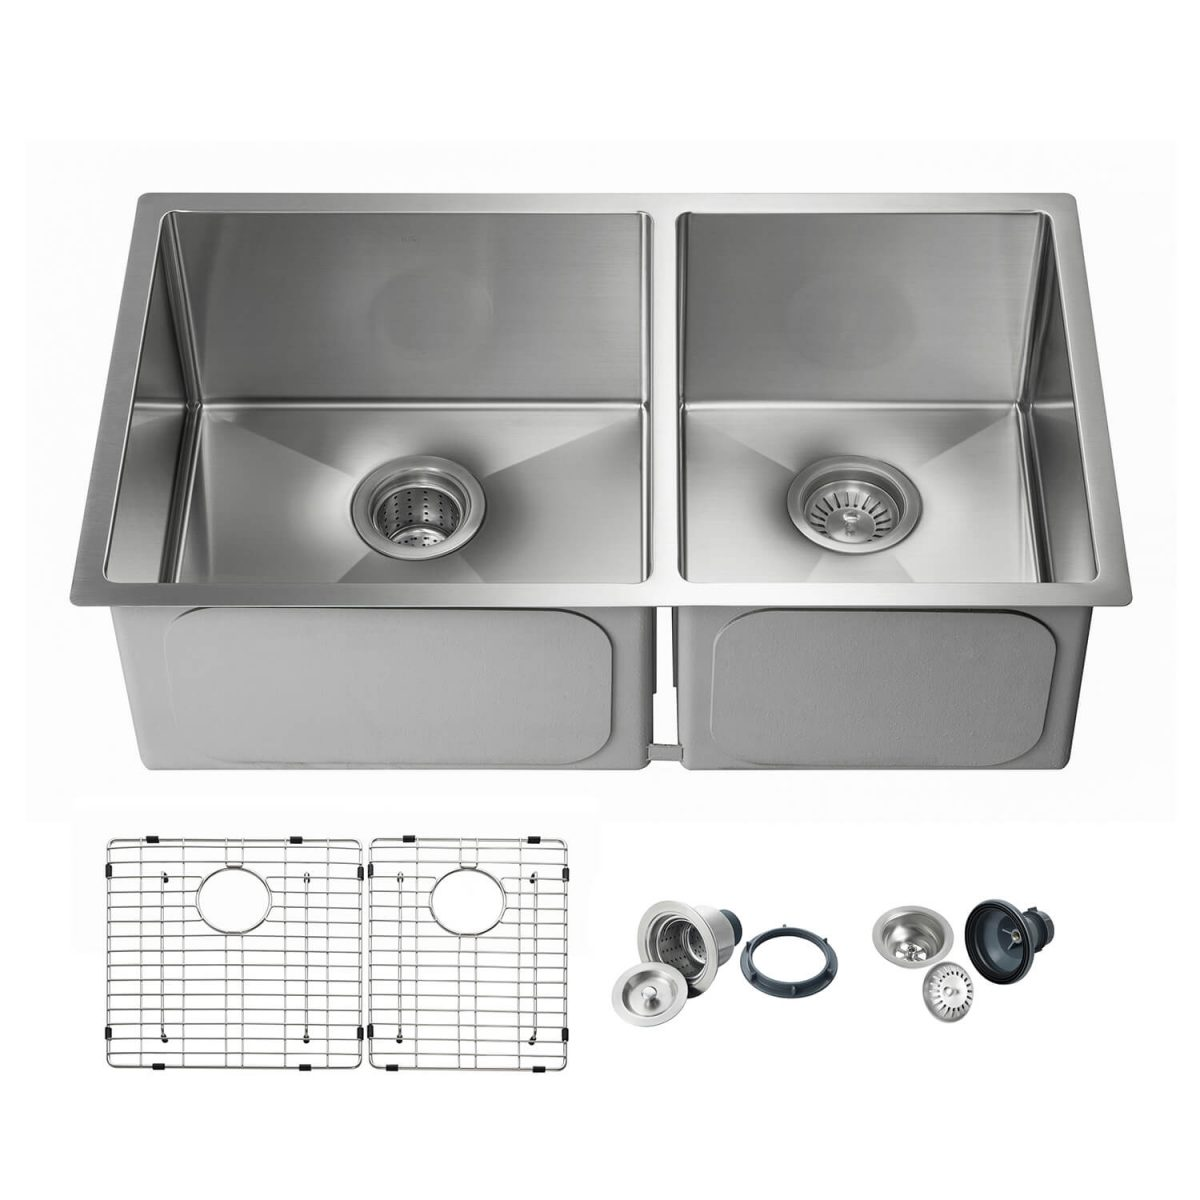 """32 3/4"""" Handcrafted Undermount Double Bowl Stainless Steel Kitchen Sink - K1-D33-BS"""